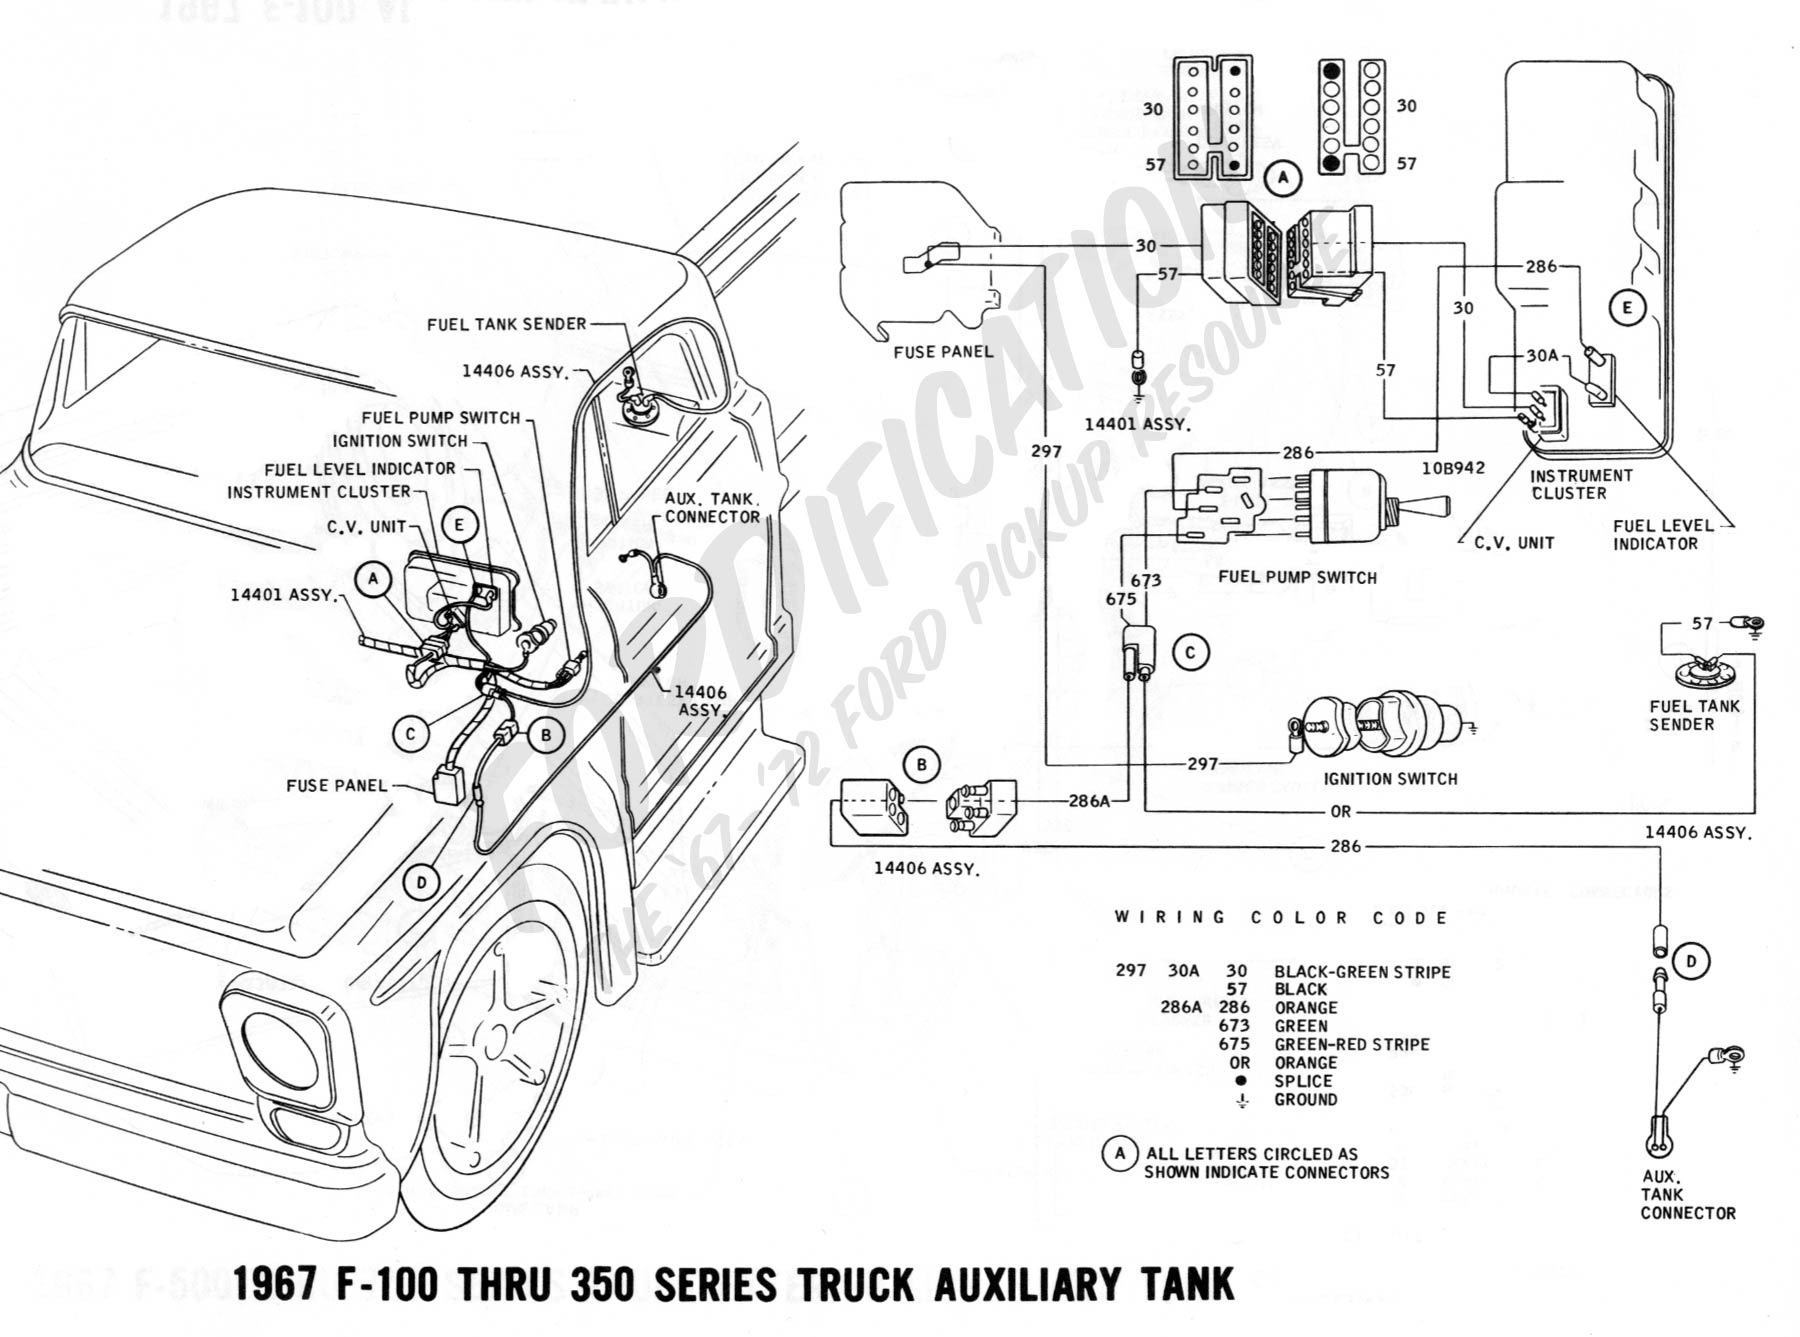 Chevy Astro Fuel Tank Wiring Diagram Worksheet And 2000 Van For Pictures U2022 Rh Mapavick Co Uk